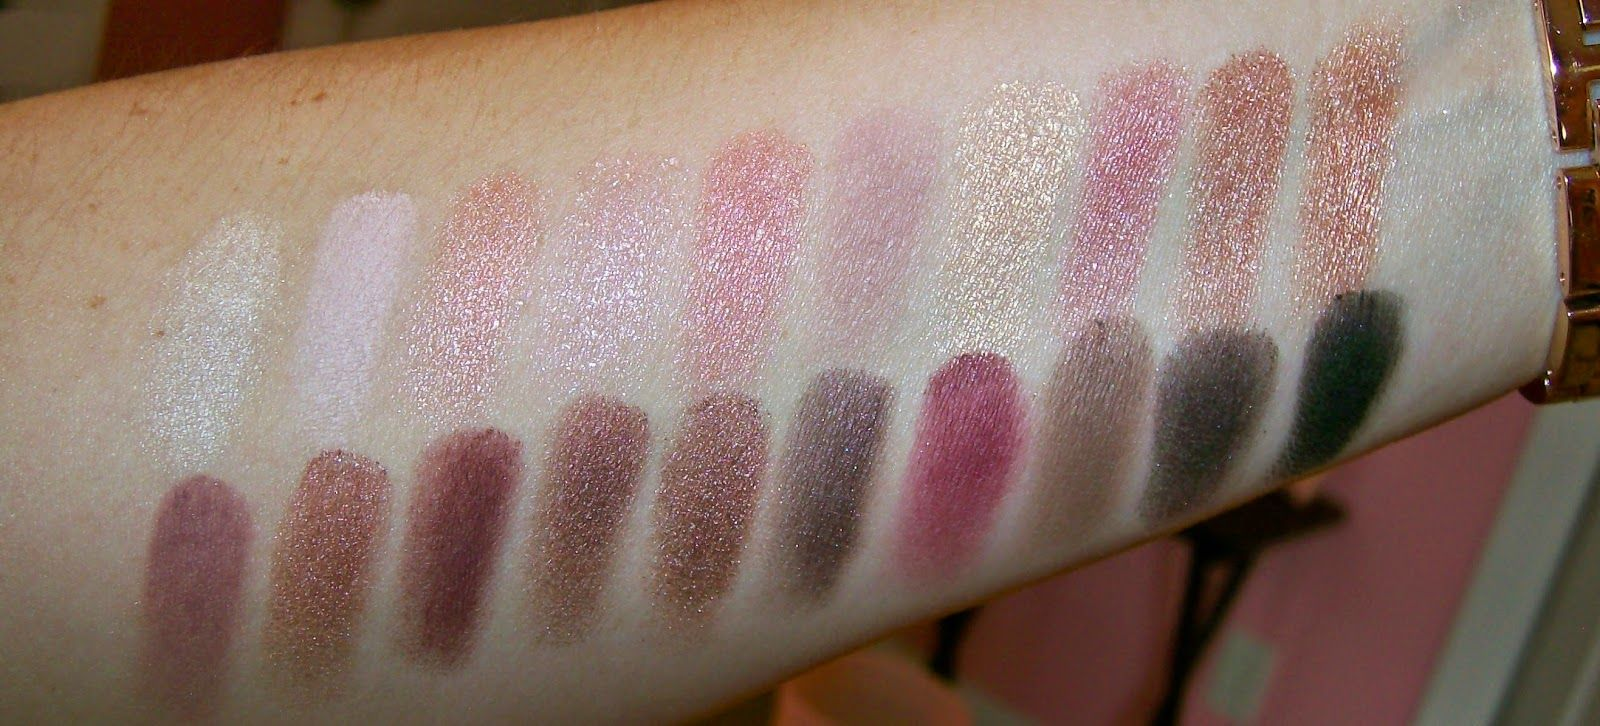 Revealed Matte Eyeshadow Palette by Coastal Scents #20